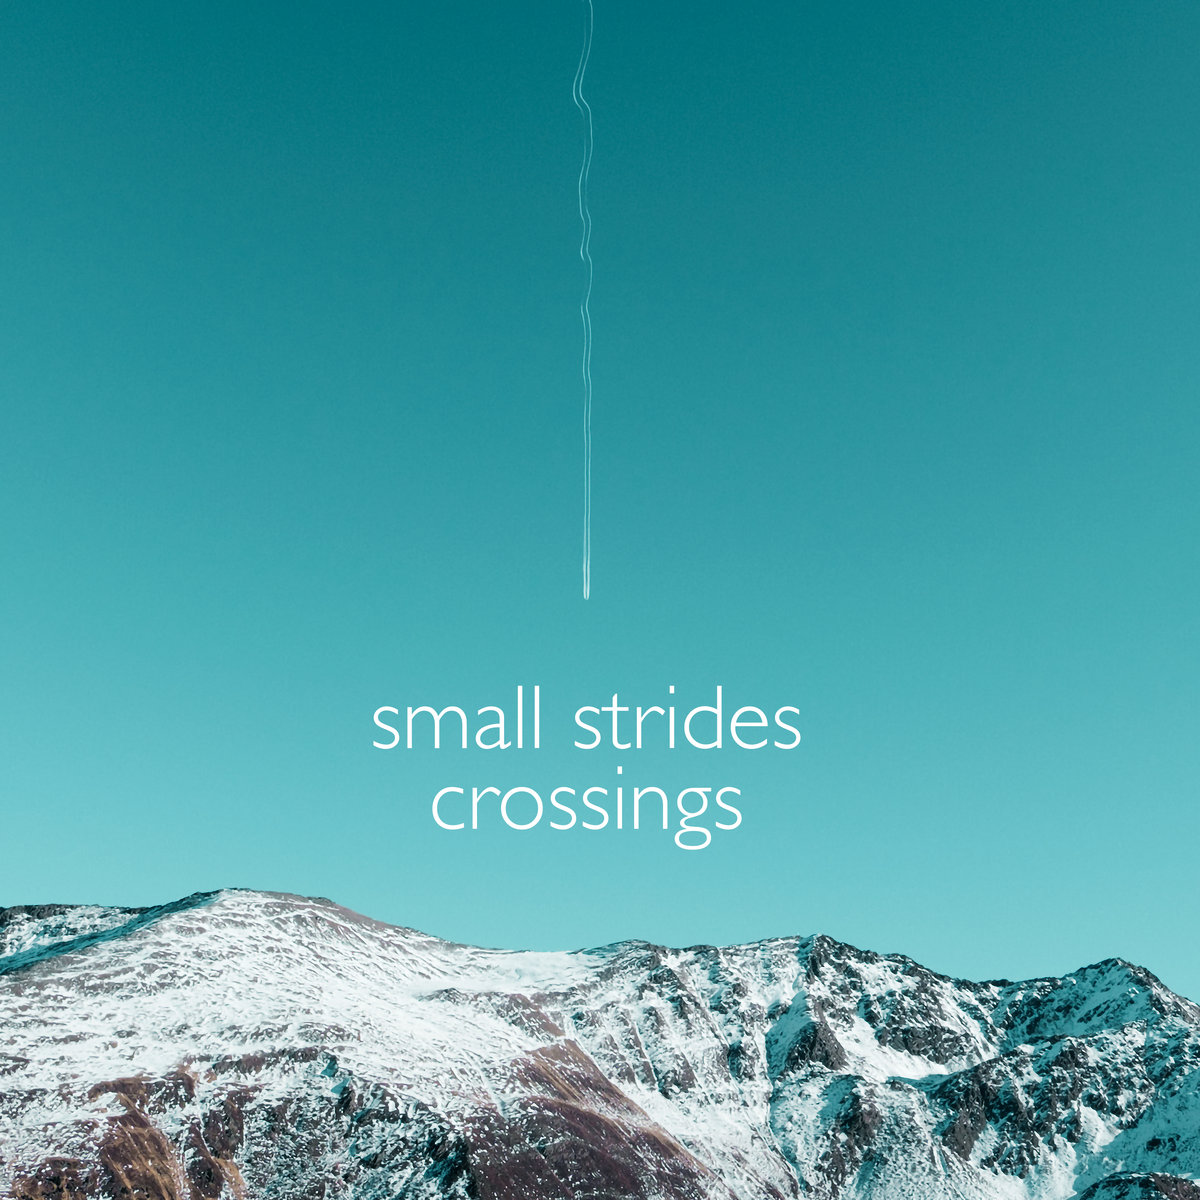 Crossings - Debüt-EP der Indie-Rock-Band Small Strides